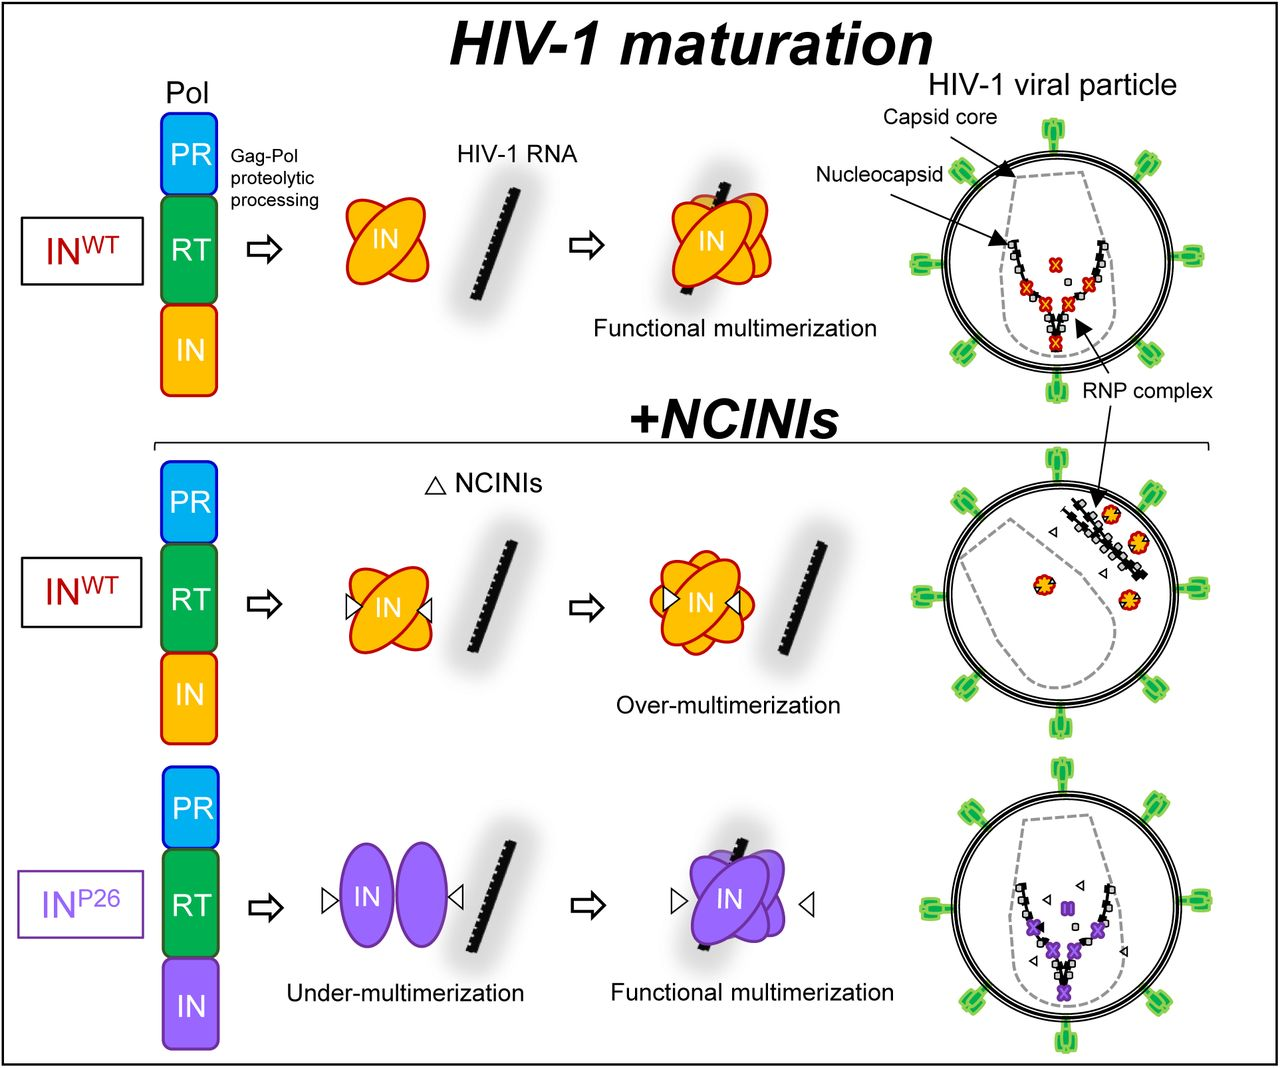 Graphical article during HIV-1 maturation. Schematic illustration focuses on the interaction of IN multimerization with HIV-1 RNA, and the location of the RNP in the viral particles during HIV-1 maturation from Gag-Pol proteolytic processing. Upper illustration indicates that normal interaction of functional IN multimerization with HIV-1 RNA results in mature HIV-1. Middle illustration shows that over-multimerized IN proteins induced by NCINIs are not able to interact with HIV-1 RNA, producing immature HIV-1 in which the RNP complex translocated from the capsid core. Lower illustration indicates that under-multimerized IN P26 can escape from NCINIs binding and is restored to IN P26 with functional multimerization by HIV-1 RNA binding, producing mature HIV-1 in the presence of potent NCINIs.